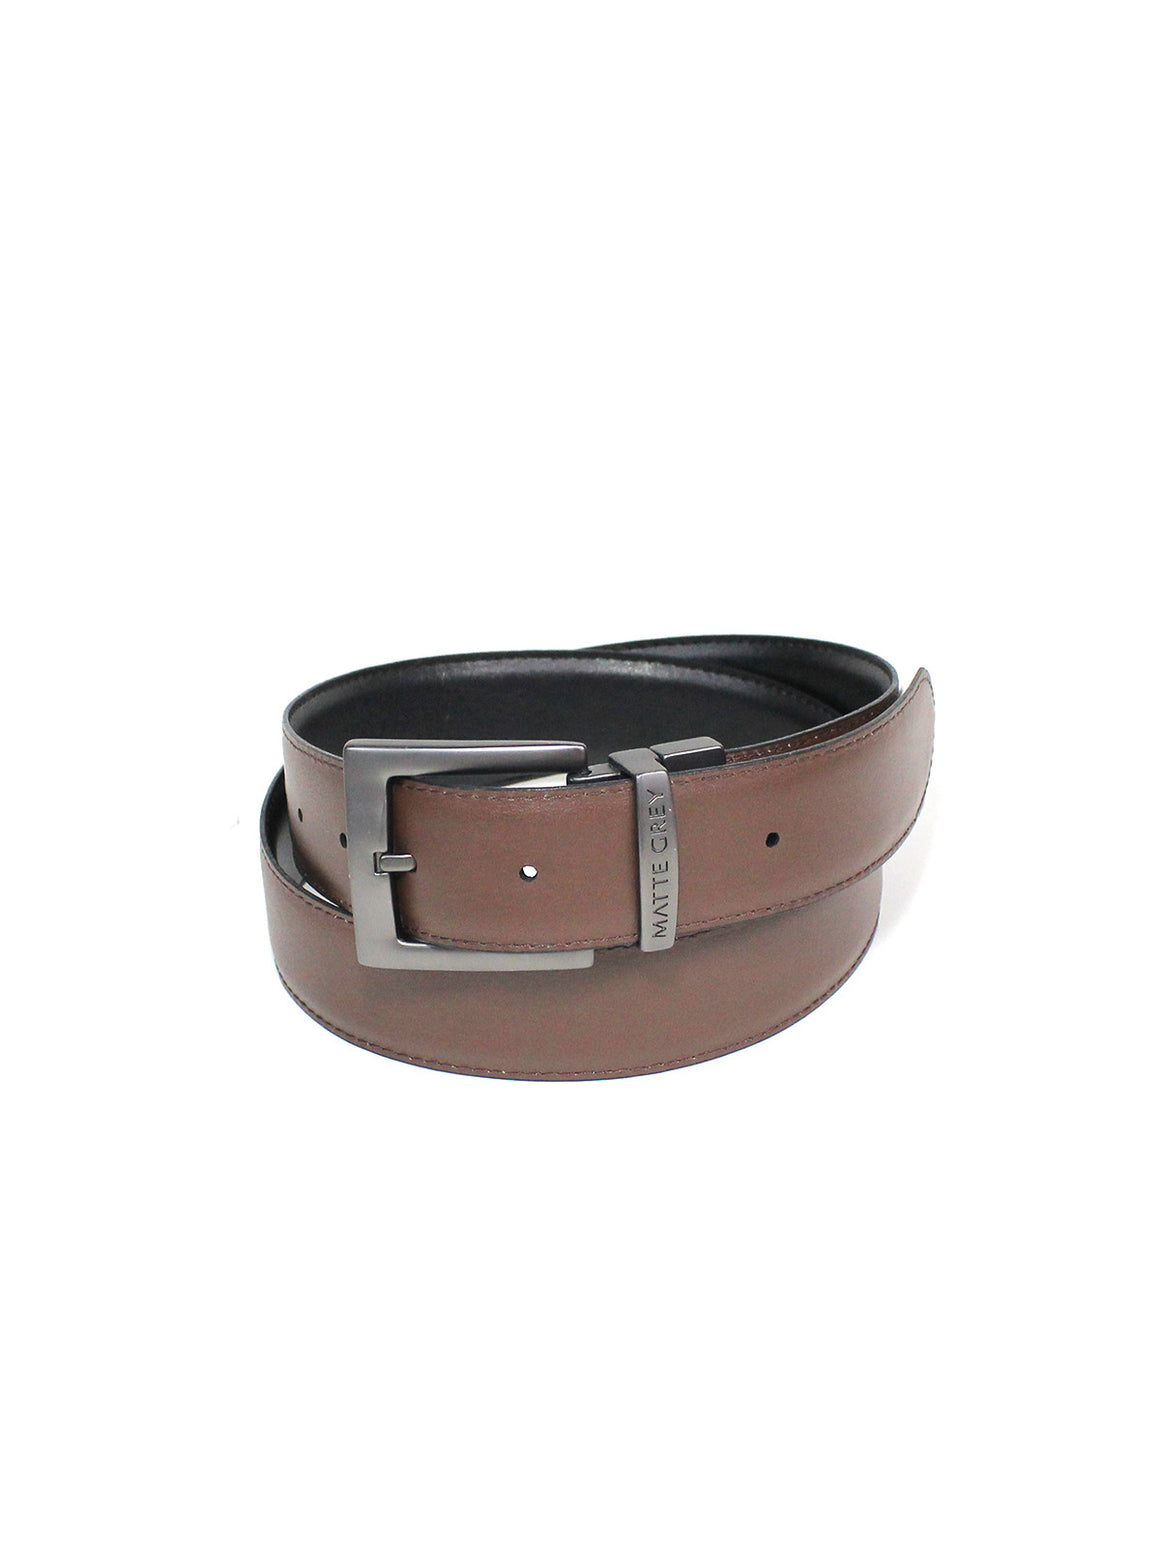 Reversible Belt - Black / Brown